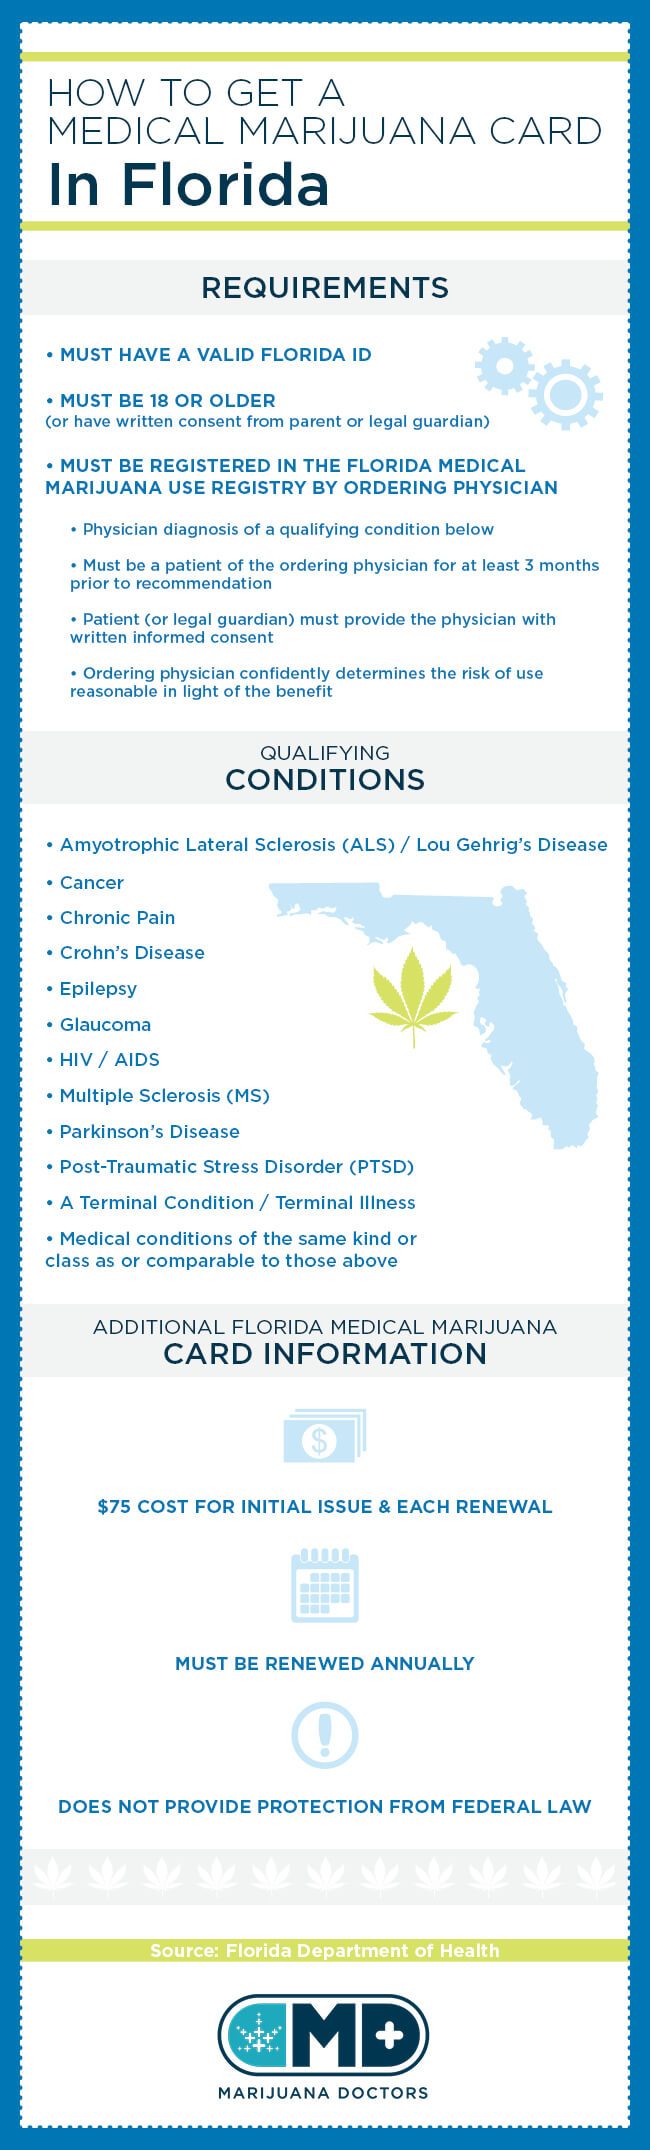 how to get a marijuana card in fl